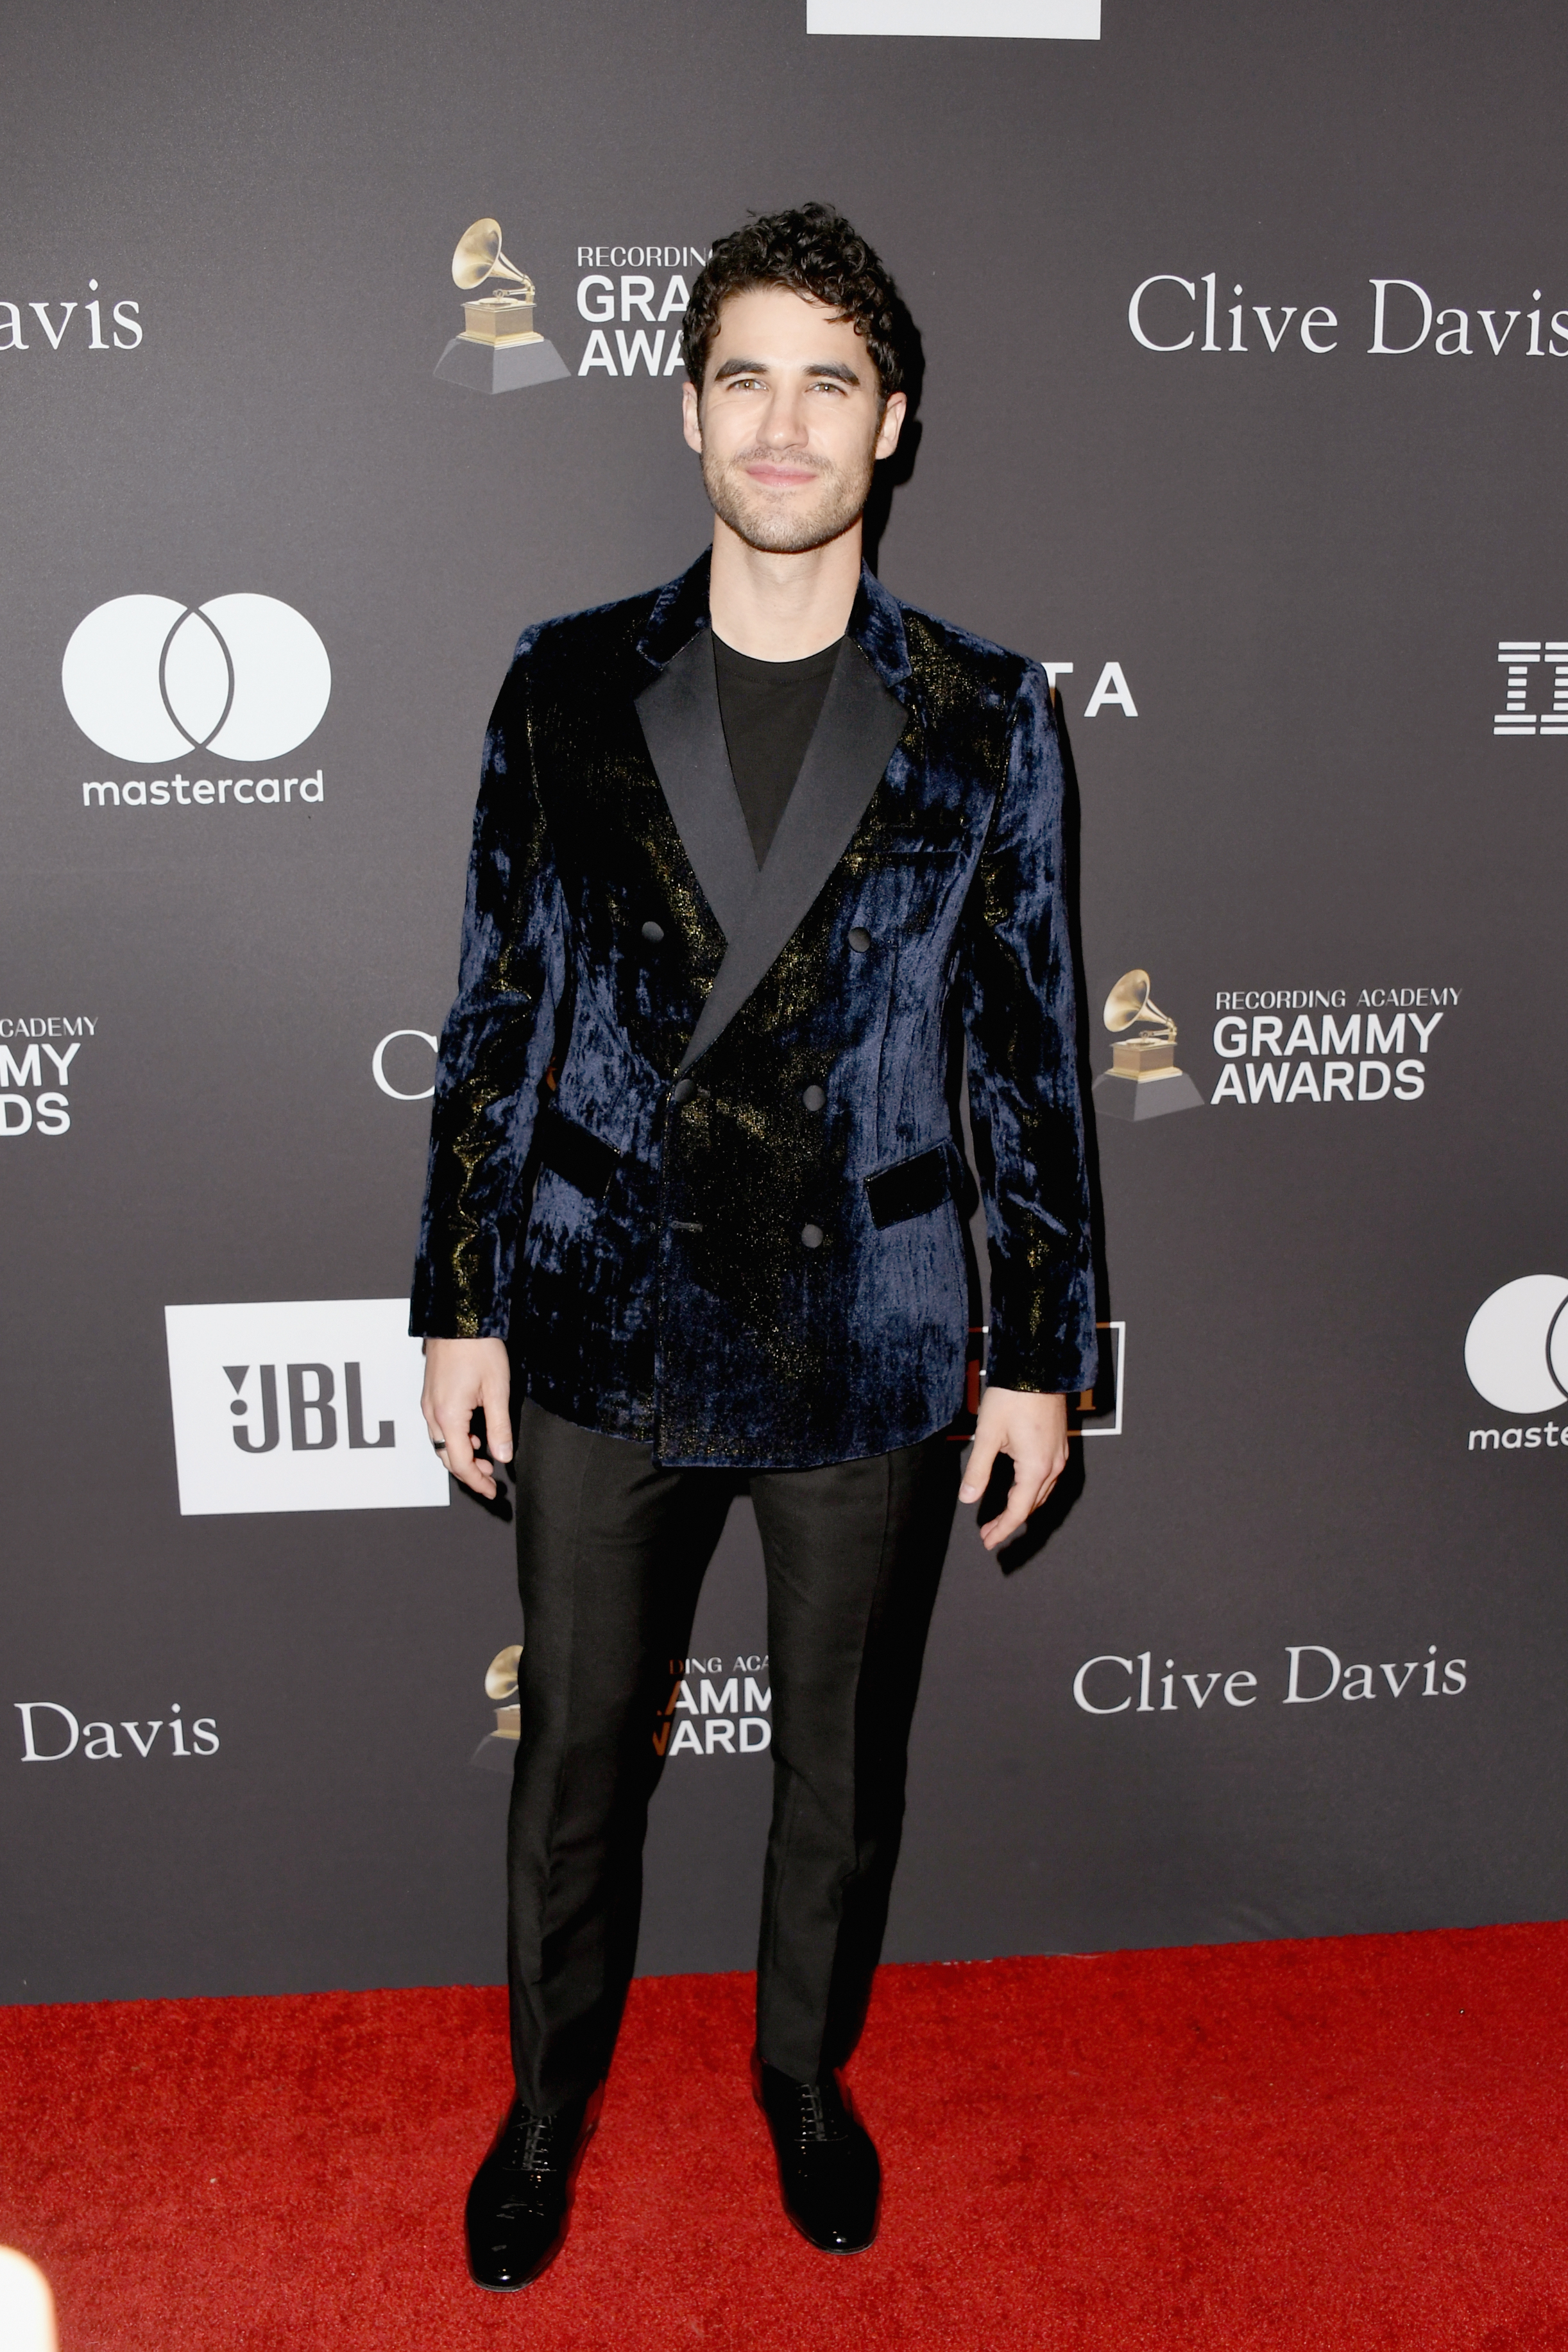 Darren Criss attends the Pre Grammy Gala and Salute to Industry Icons presented by The Recording Academy™ and Clive Davis at the Beverly Hilton hotel in Beverly Hills on Feb. 9, 2019.